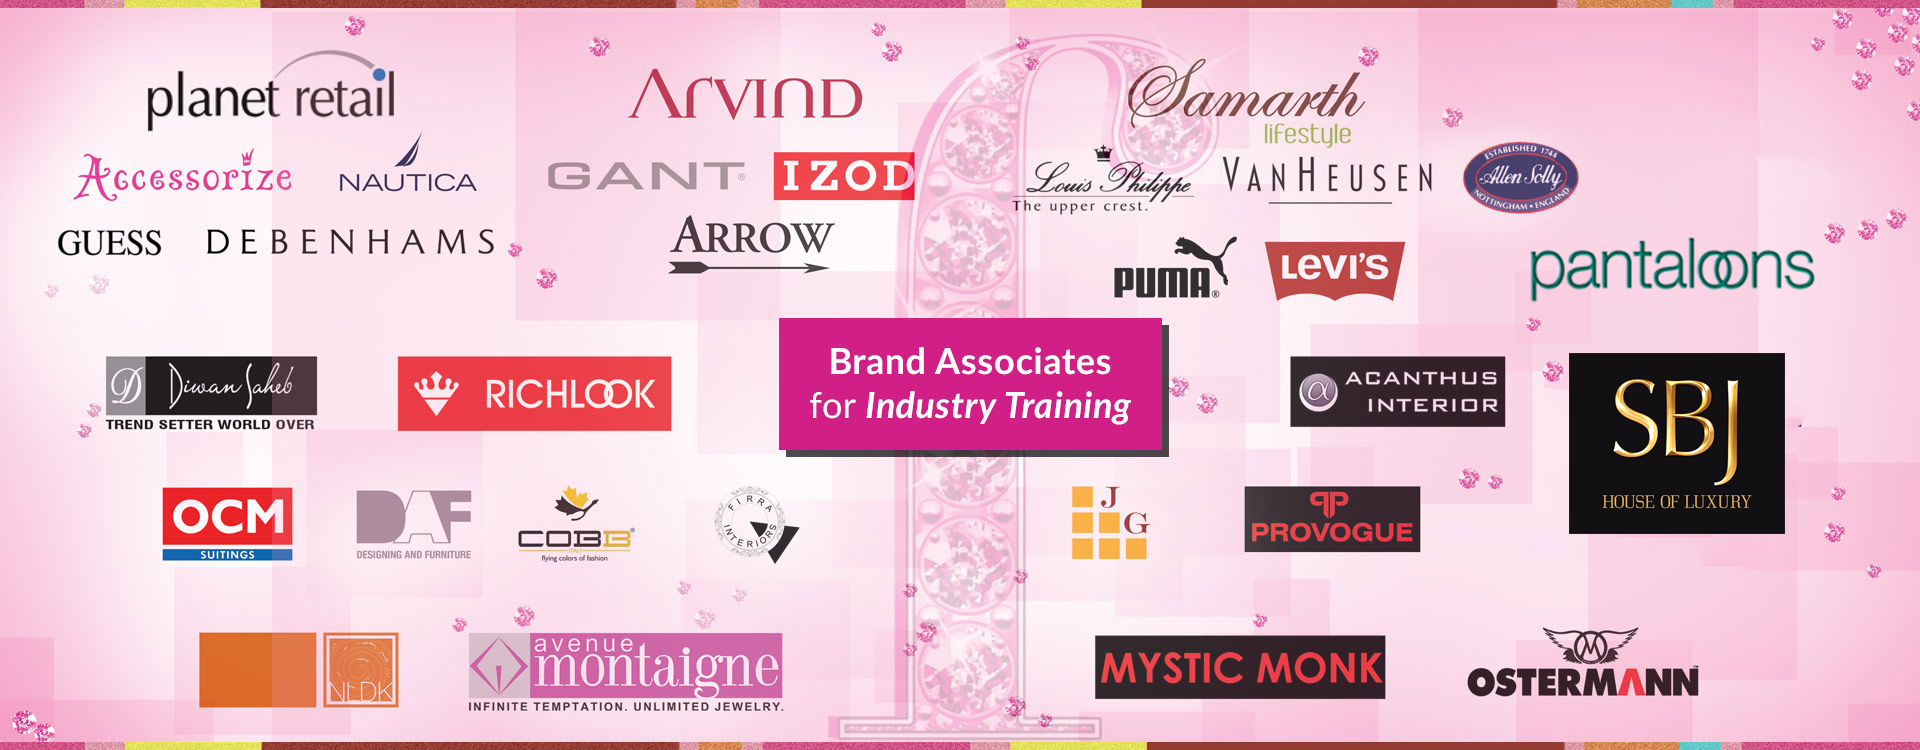 Fashionista Brand Associates For Industry Training